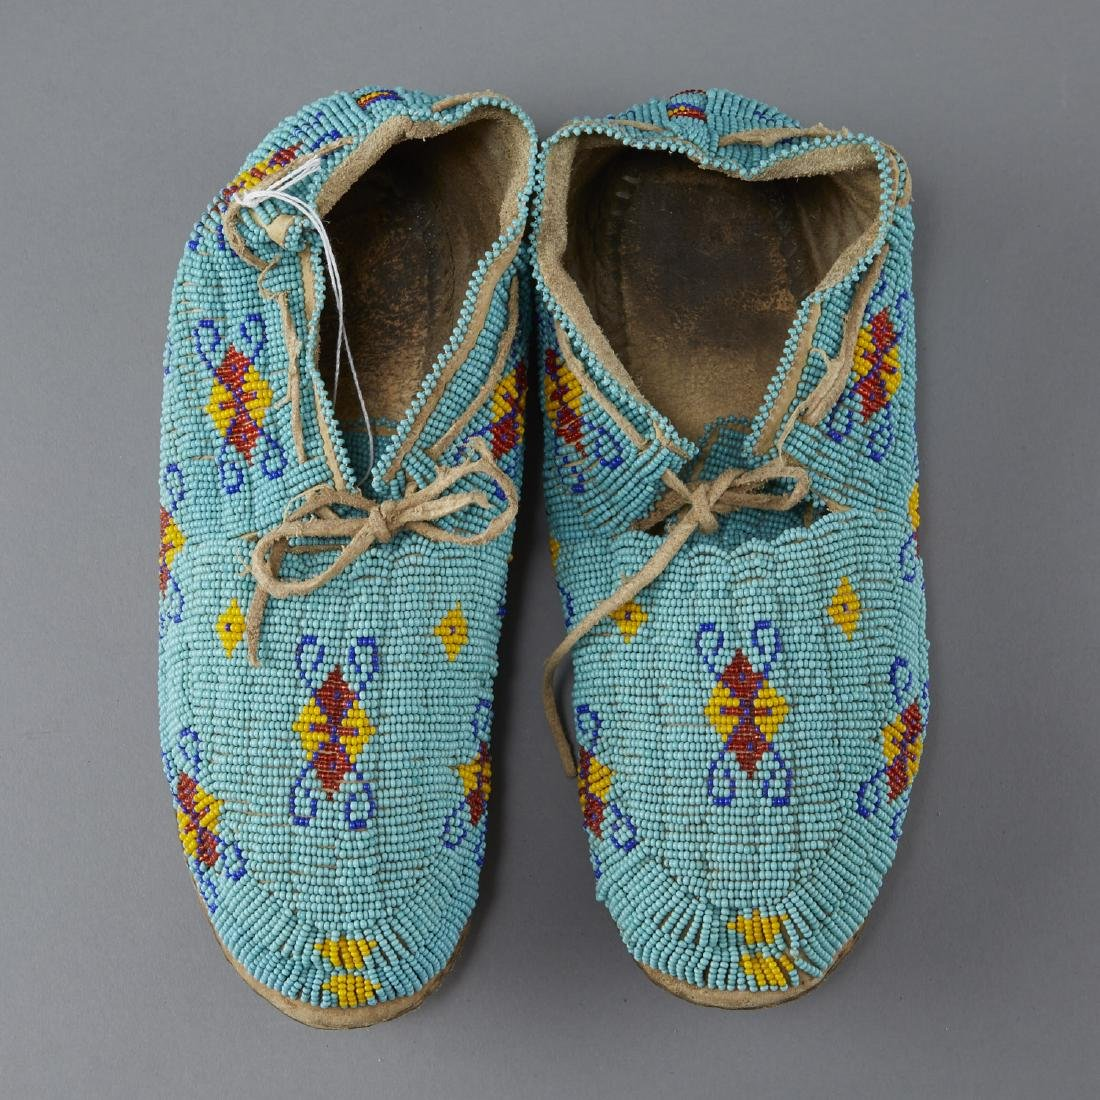 7 Pairs Beaded Moccasins - 3